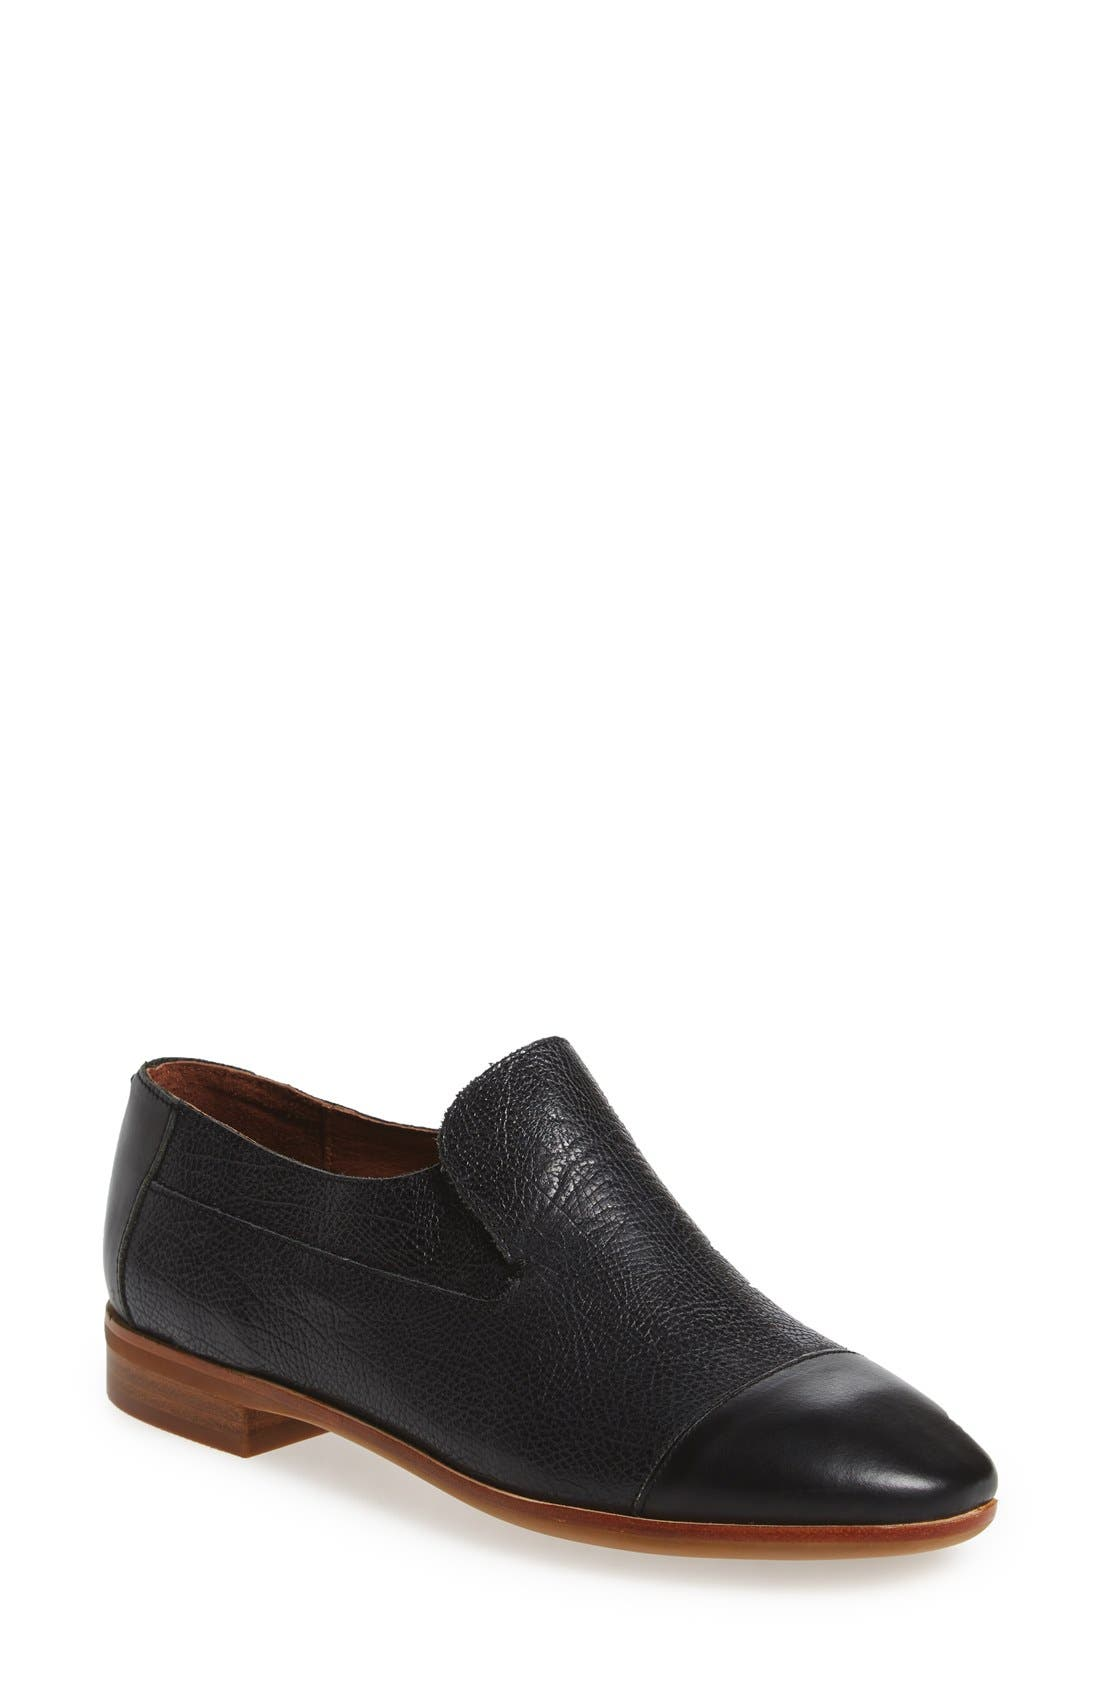 'Bryant' Cap Toe Loafer,                             Main thumbnail 1, color,                             BLACK LEATHER